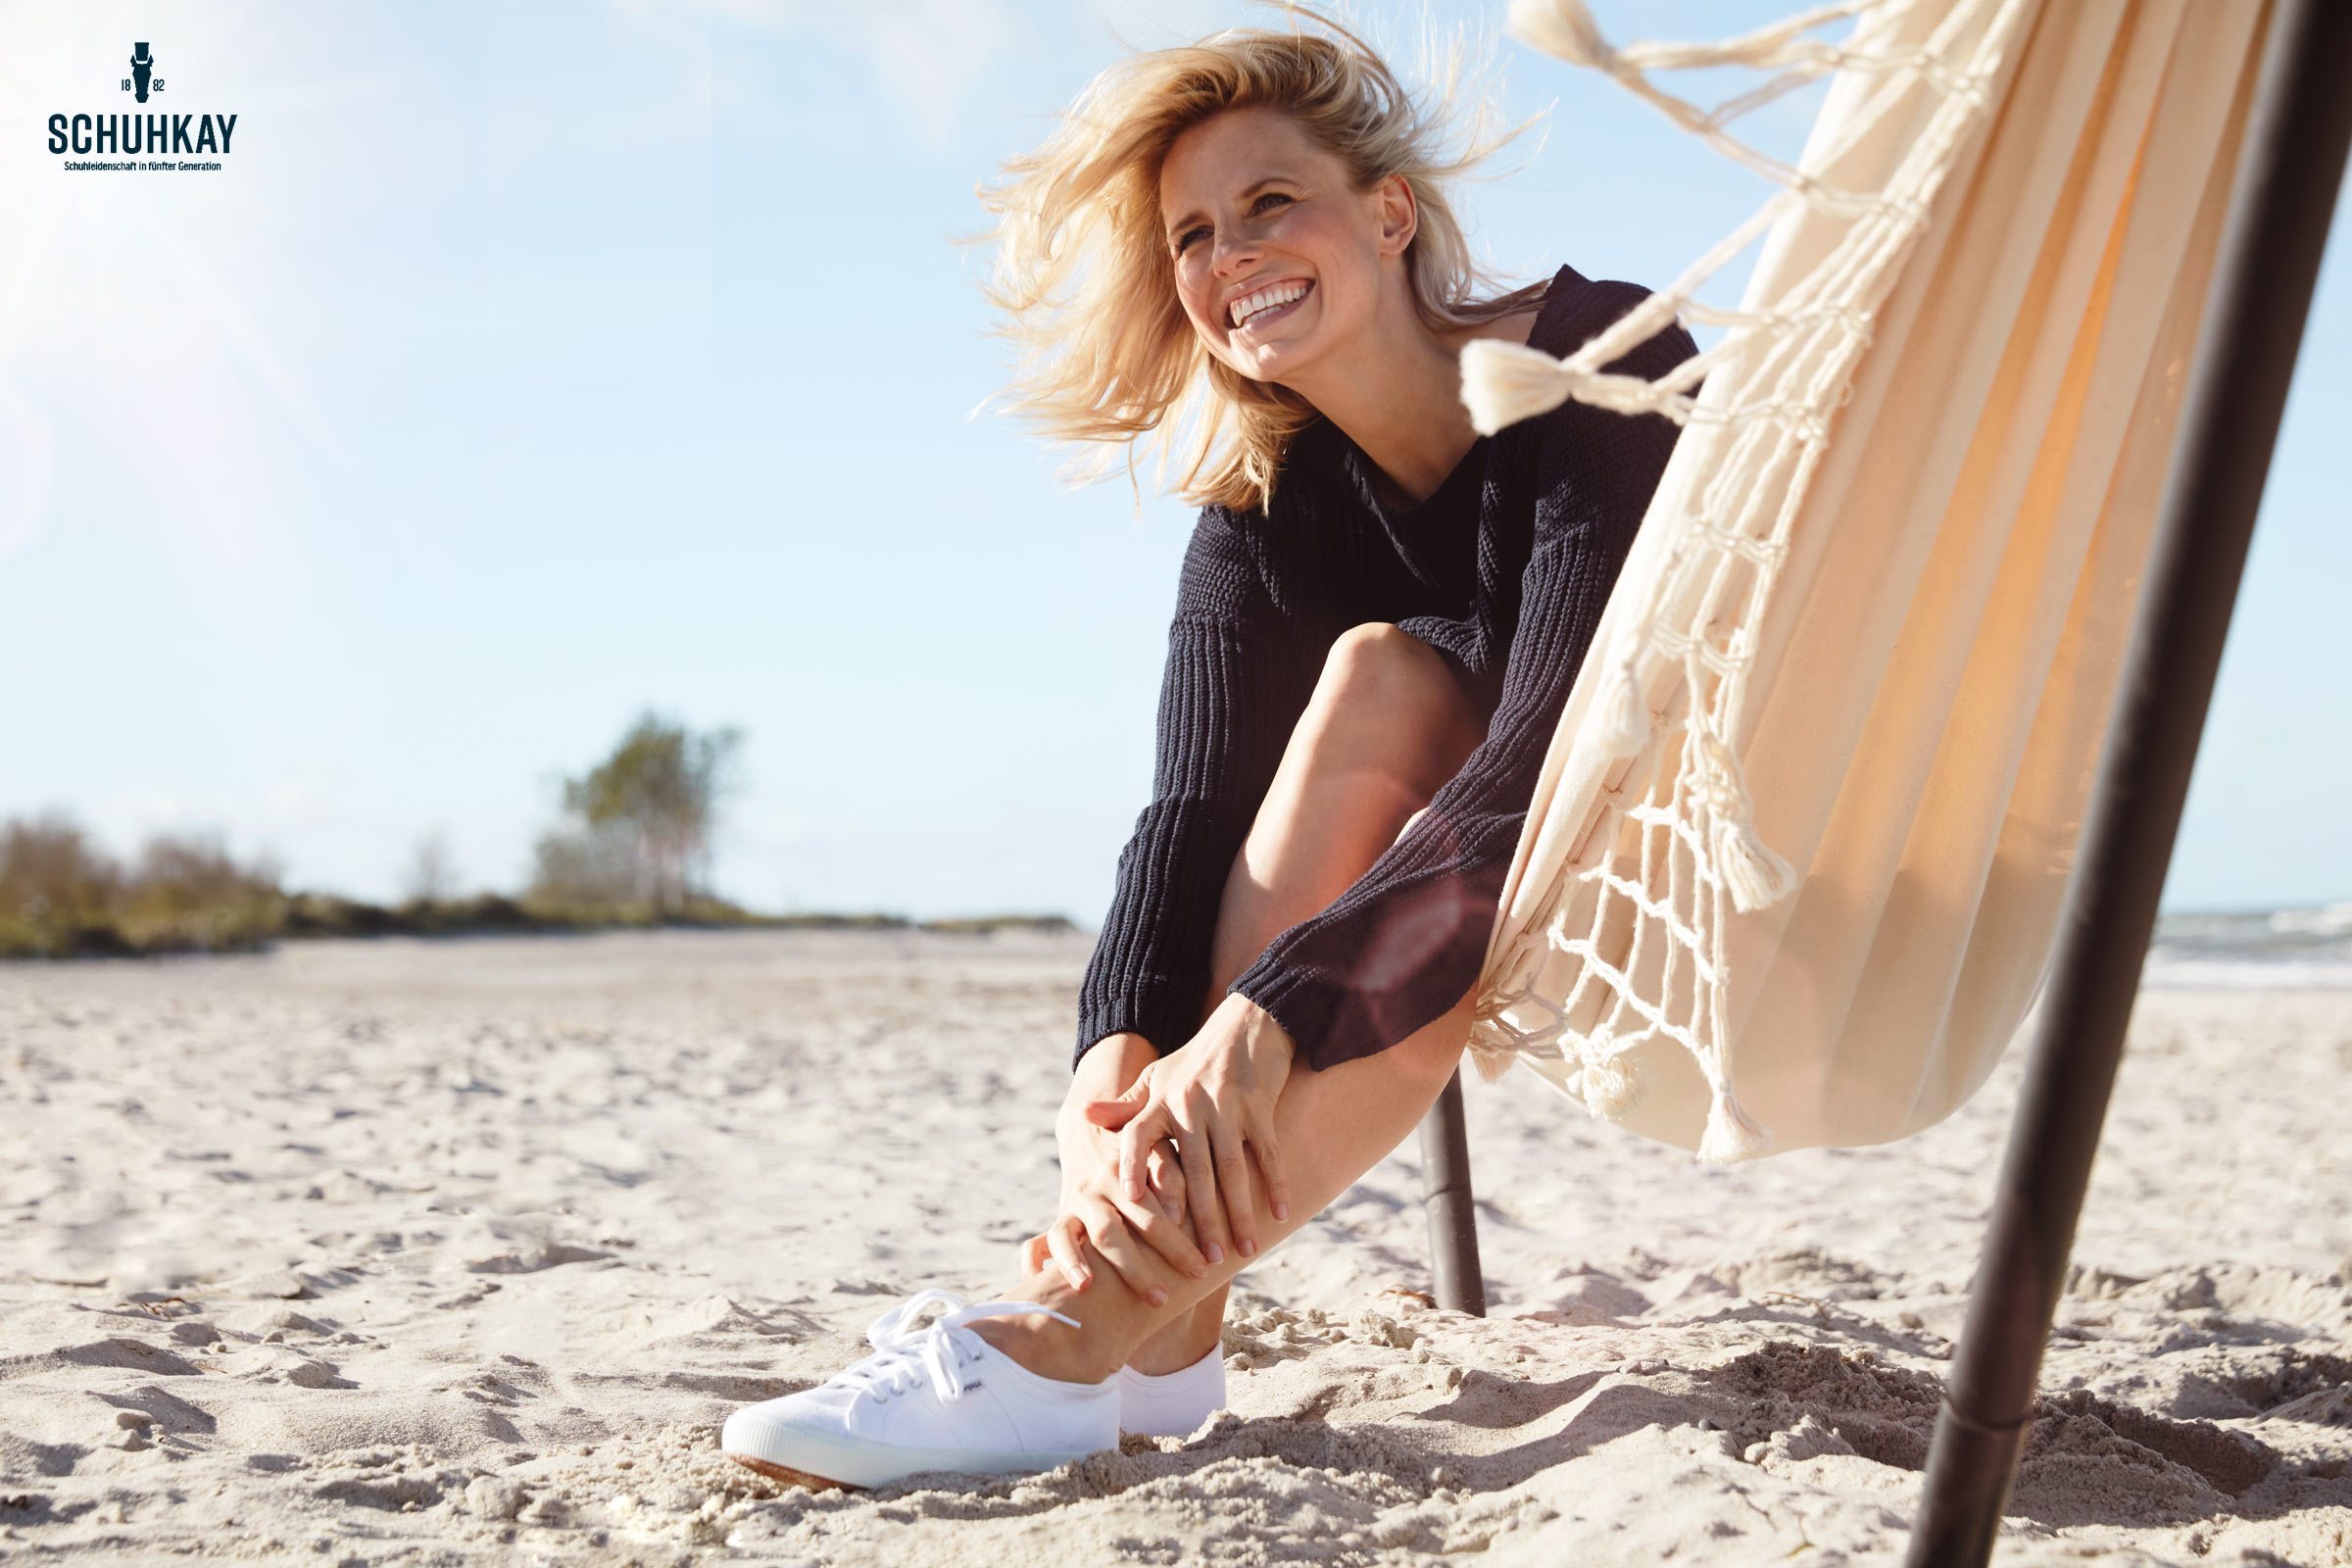 Schuhkay-Imageshooting-Sommer2018-6